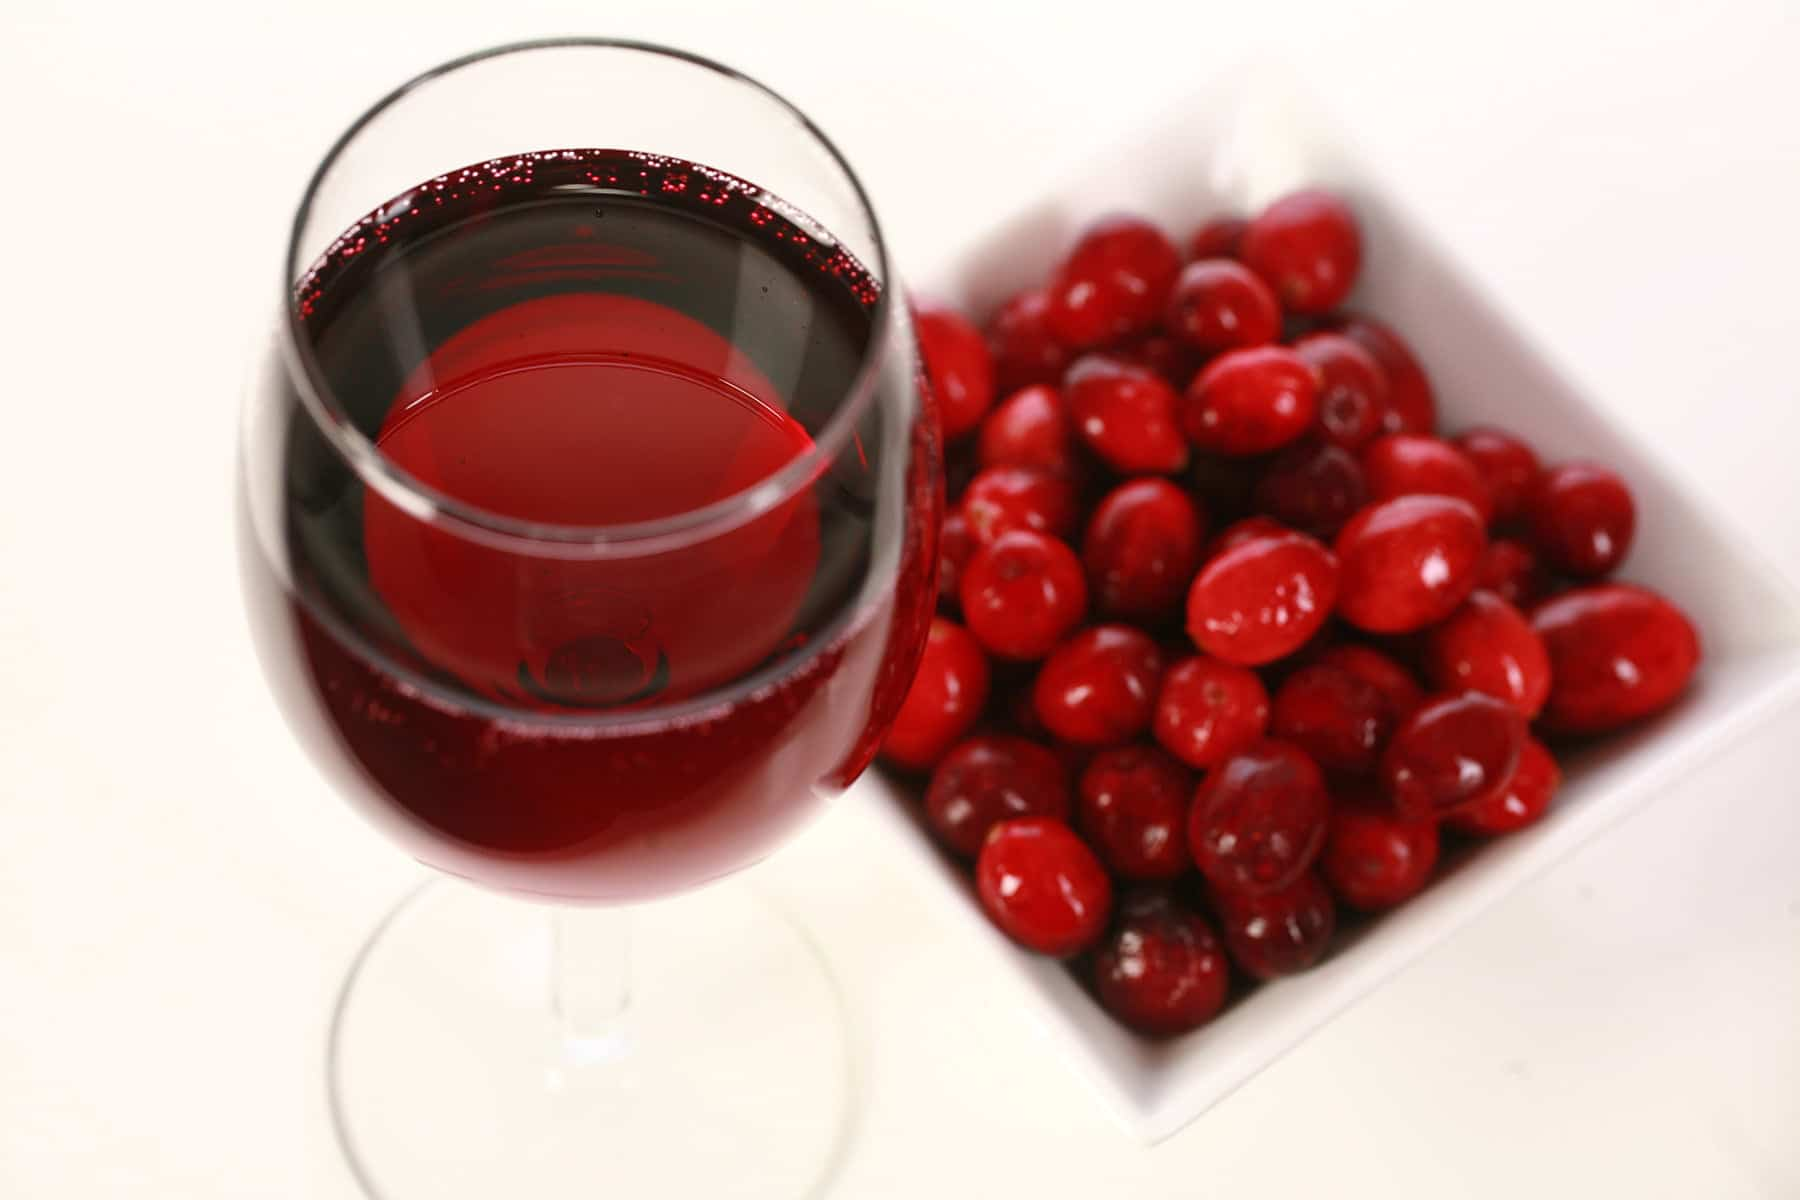 A glass of red wine is pictured next to a small bowl of fresh cranberries, against a white background.